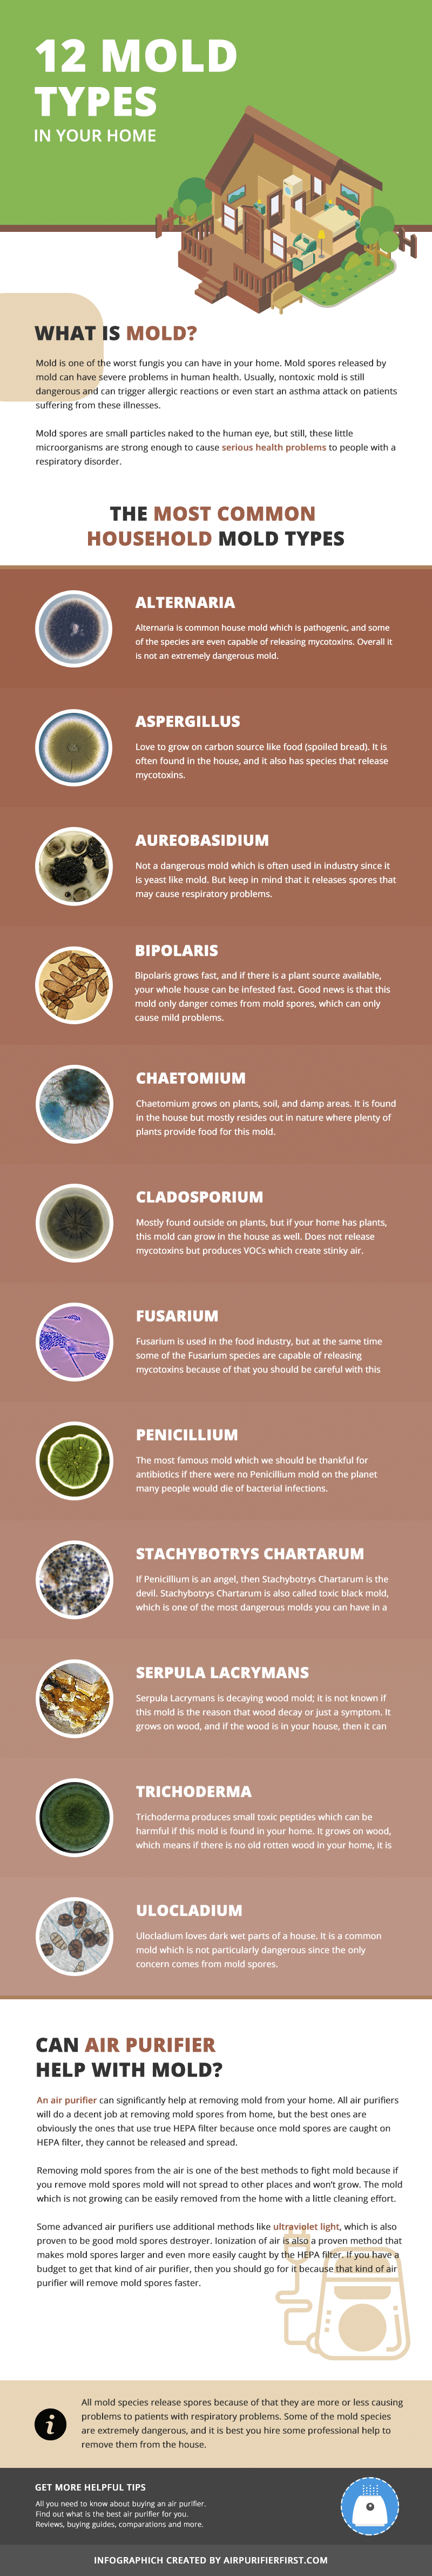 12 Types of Mold Founded in Home Infographic